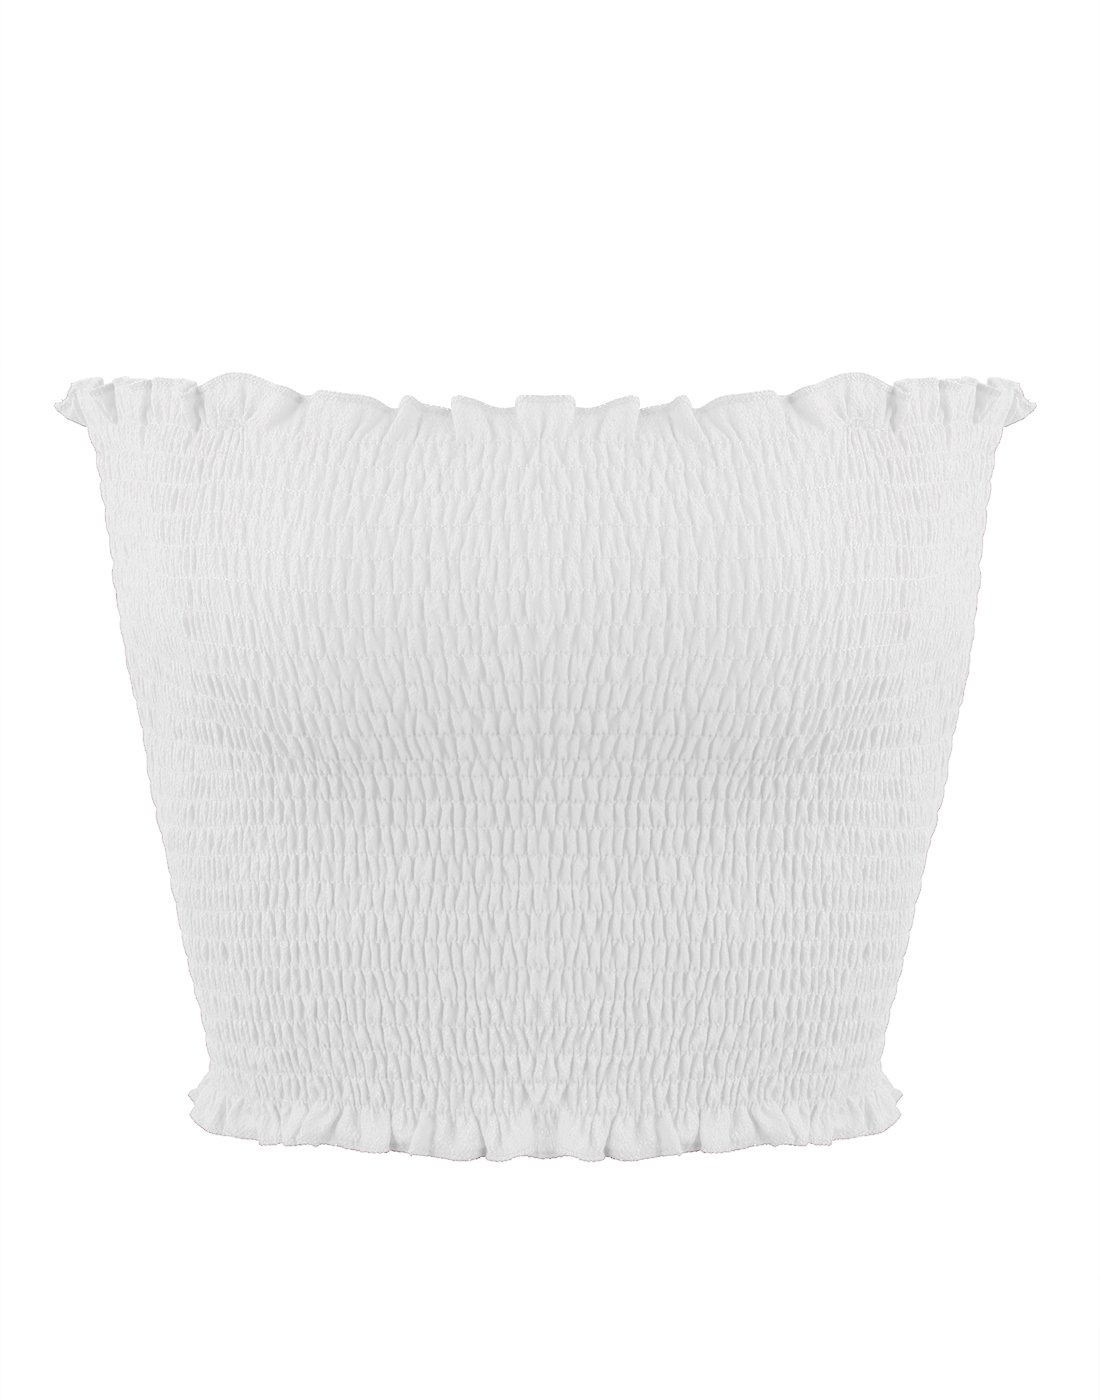 Sweetbei J Womens Strapless Pleated Summer Sexy Bandeau Tube Crop Tops White M